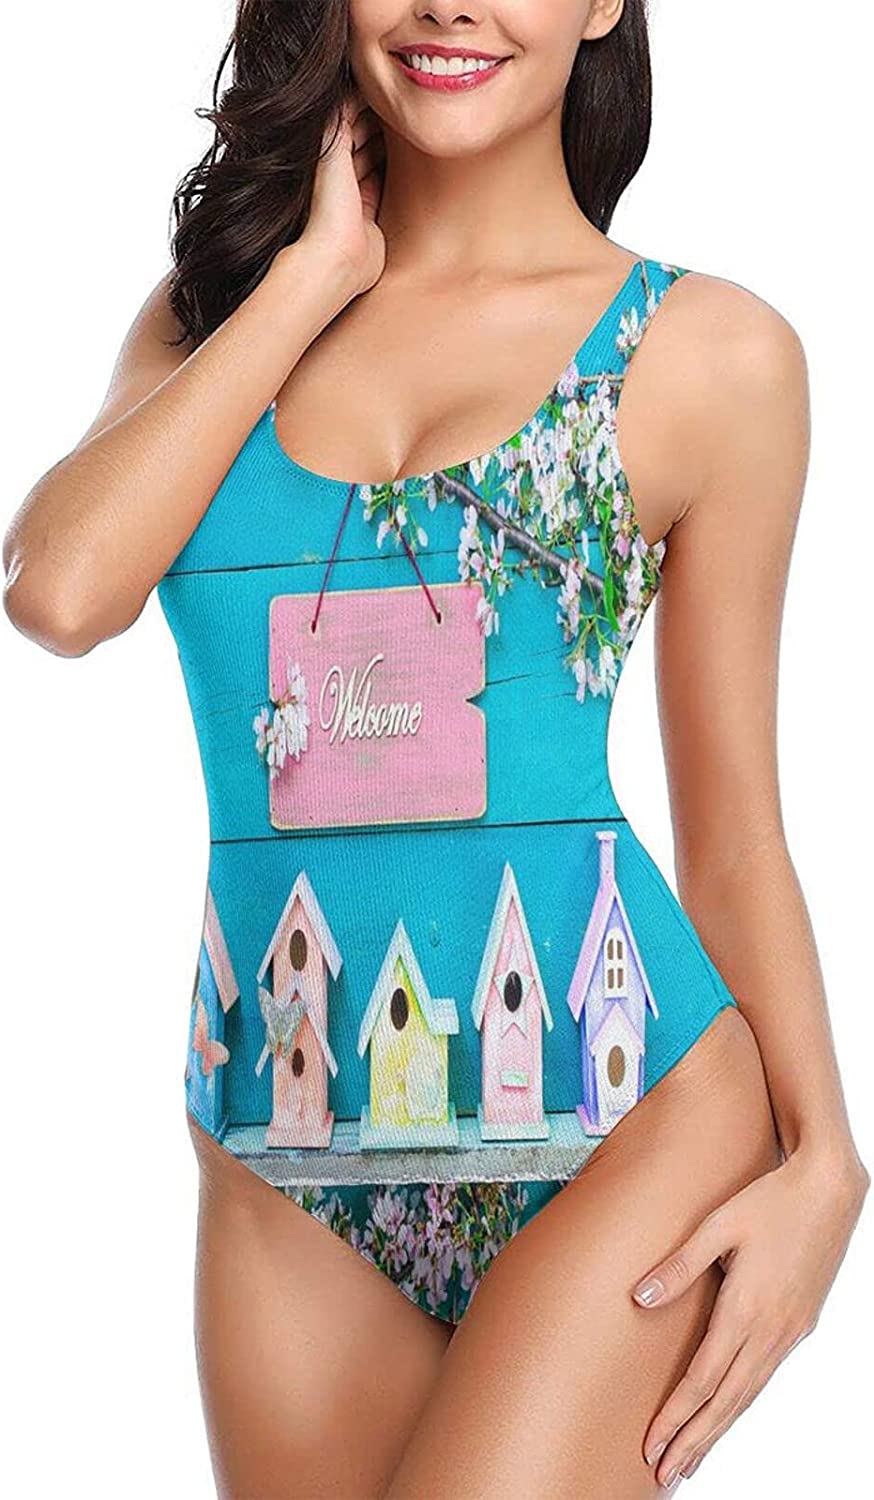 OcuteO One Piece Bathing Suits Sexy Swimsuits Slimming for Women Teen Girls Welcome S